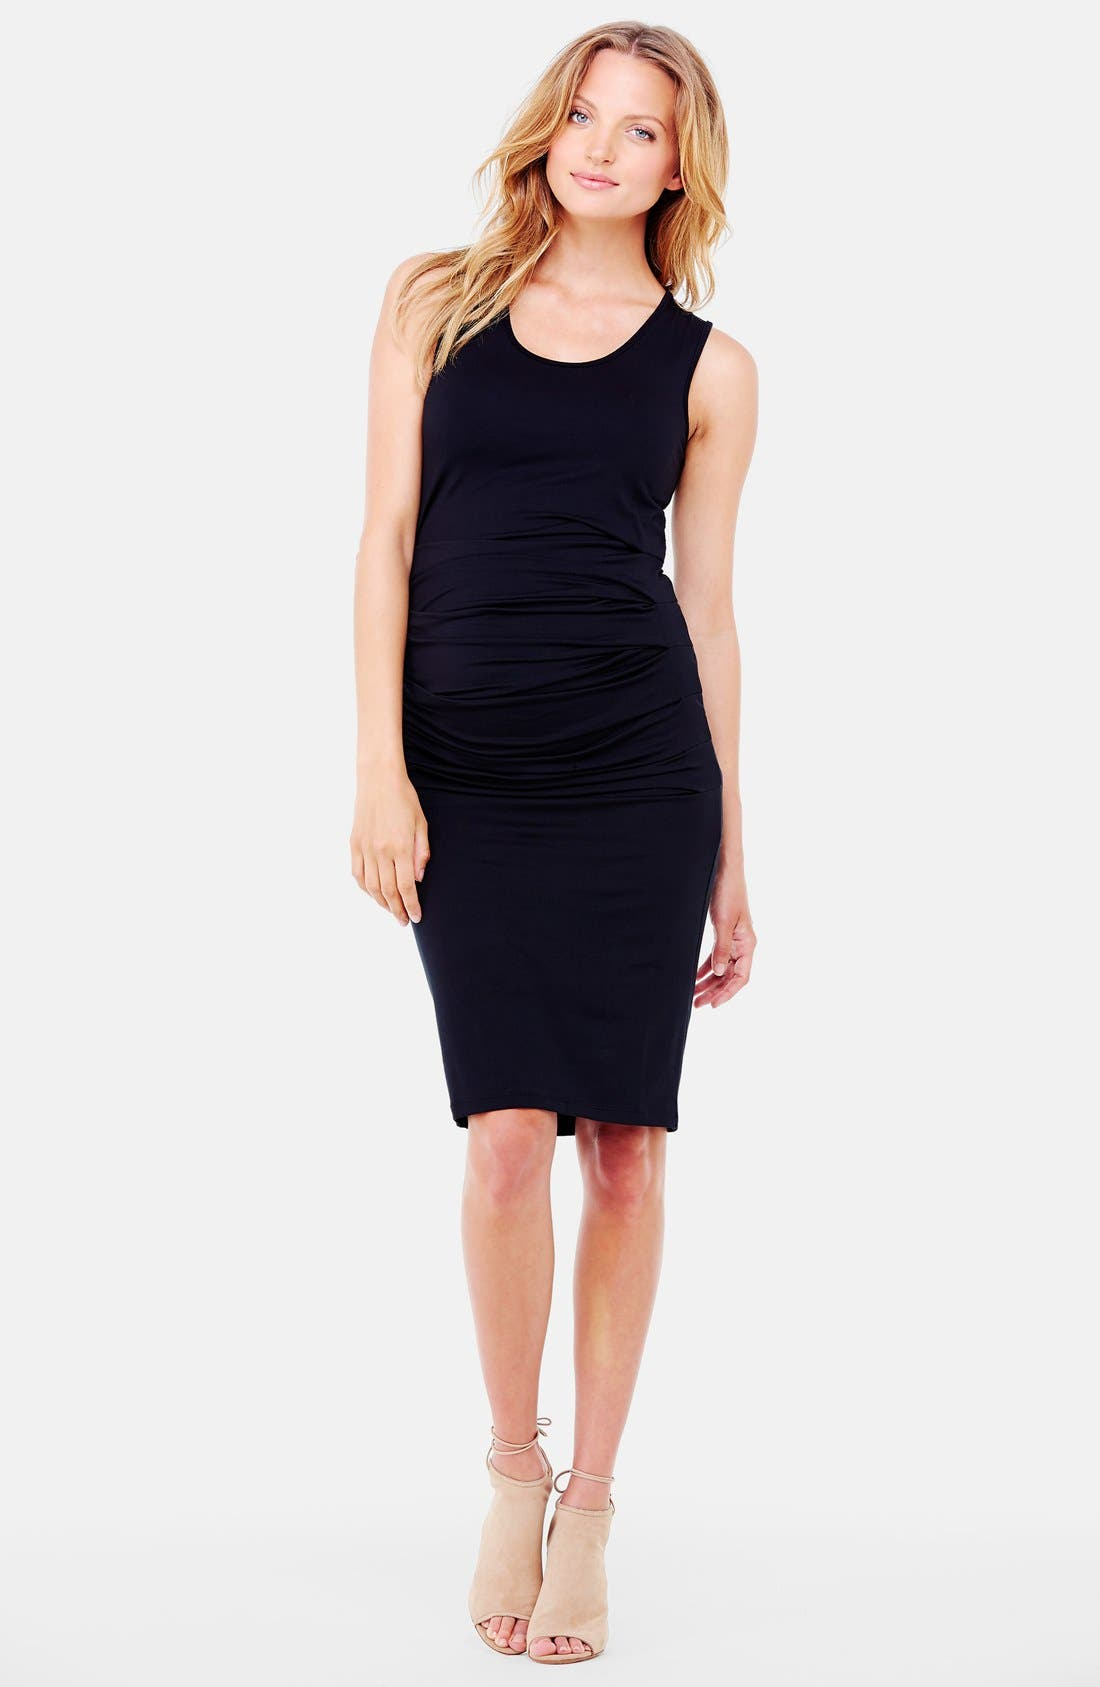 Stylish Affordable Maternity Clothes. We offer Maternity Dresses, Tops, Intimates, Jeans, Leggings, Skirts, Shorts, Nursing Bras, Plus Size Maternity Clothes.